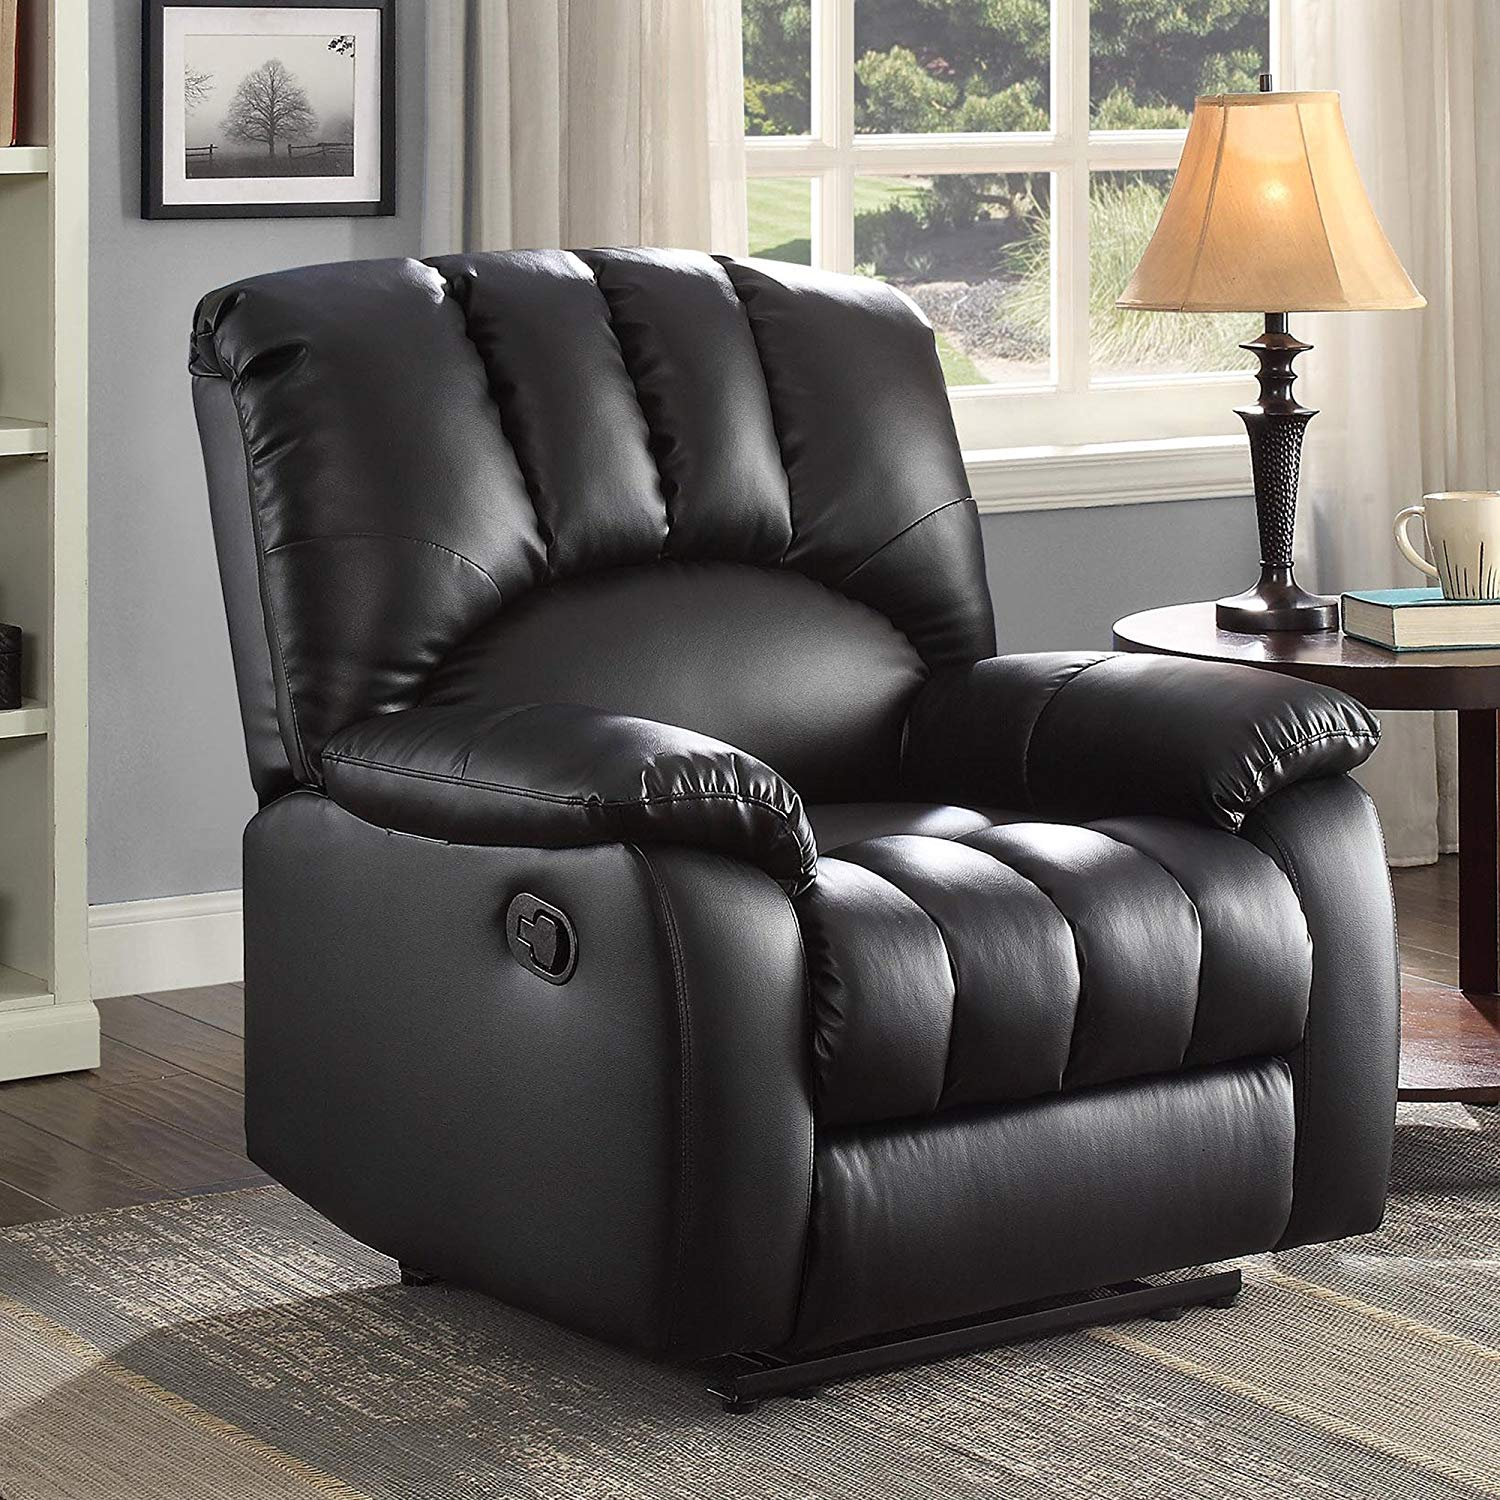 Stylish Living Room Or Bedroom Reclining Chair With High-Density Foam, Soft And Cozy, Supportive Suspension Straps, Solid Wood Frame Construction, Multi-Position Comfort Options, Black Finish